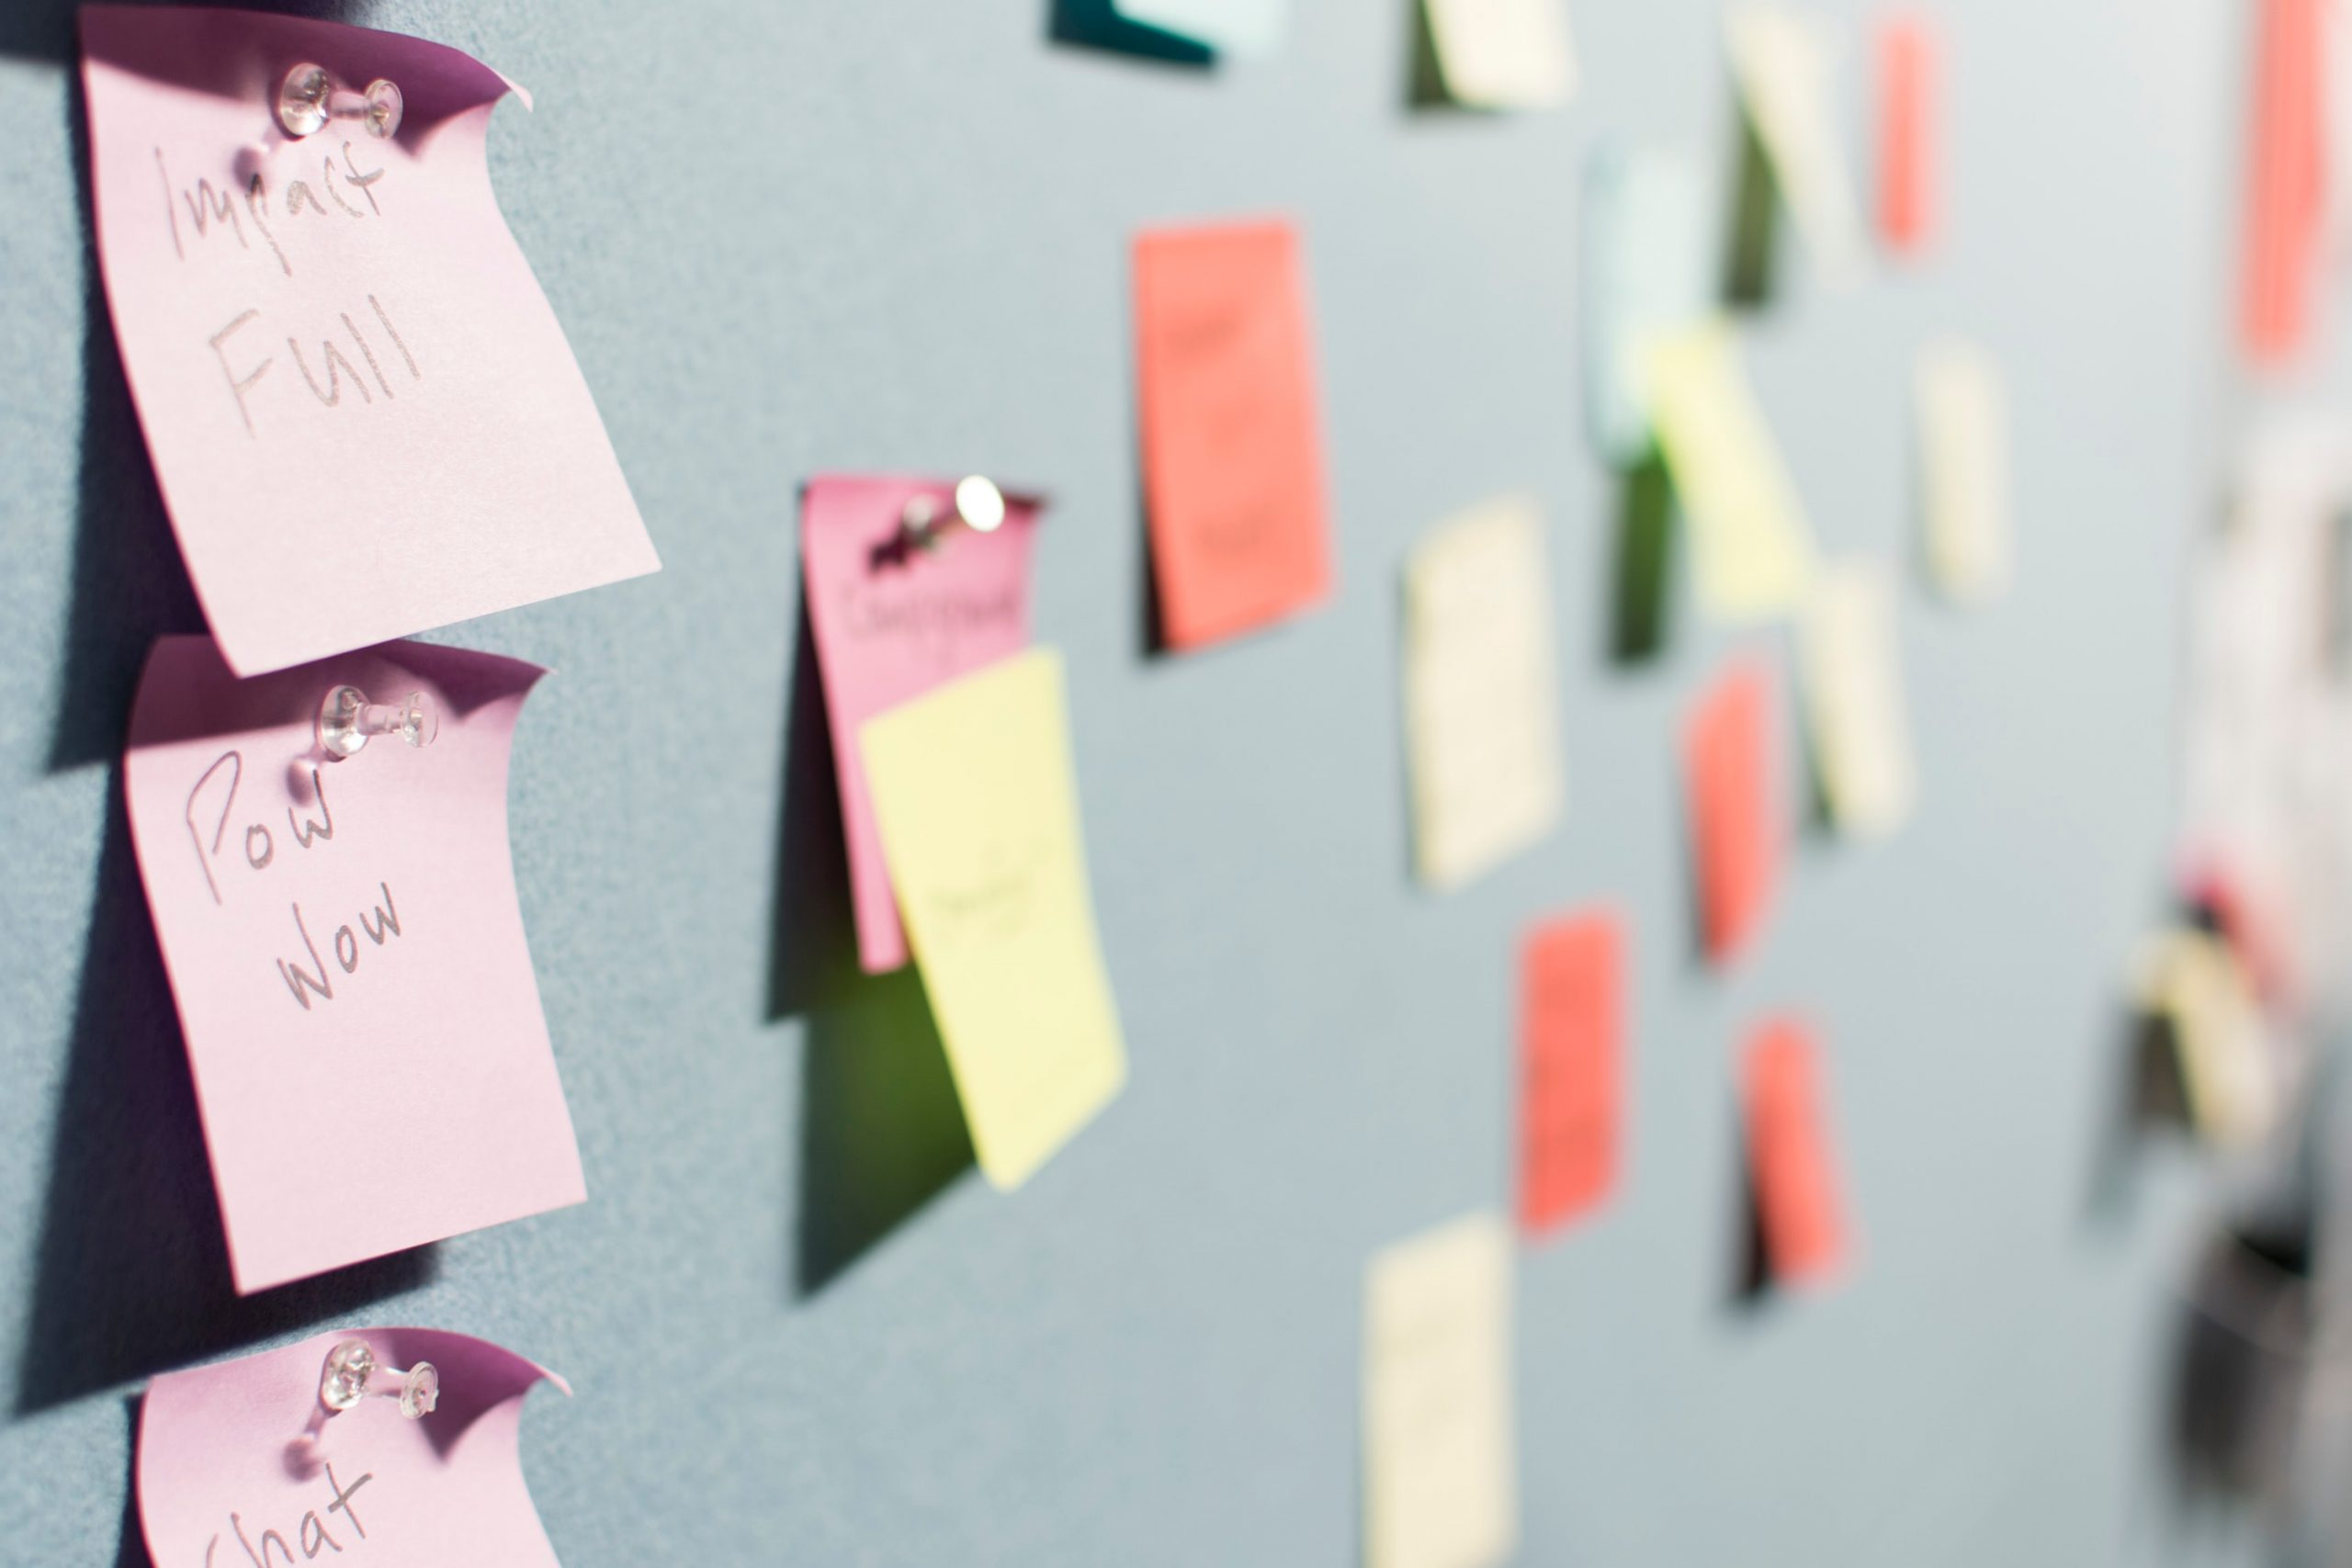 image of colorful post-it notes pinned on a bulletin board